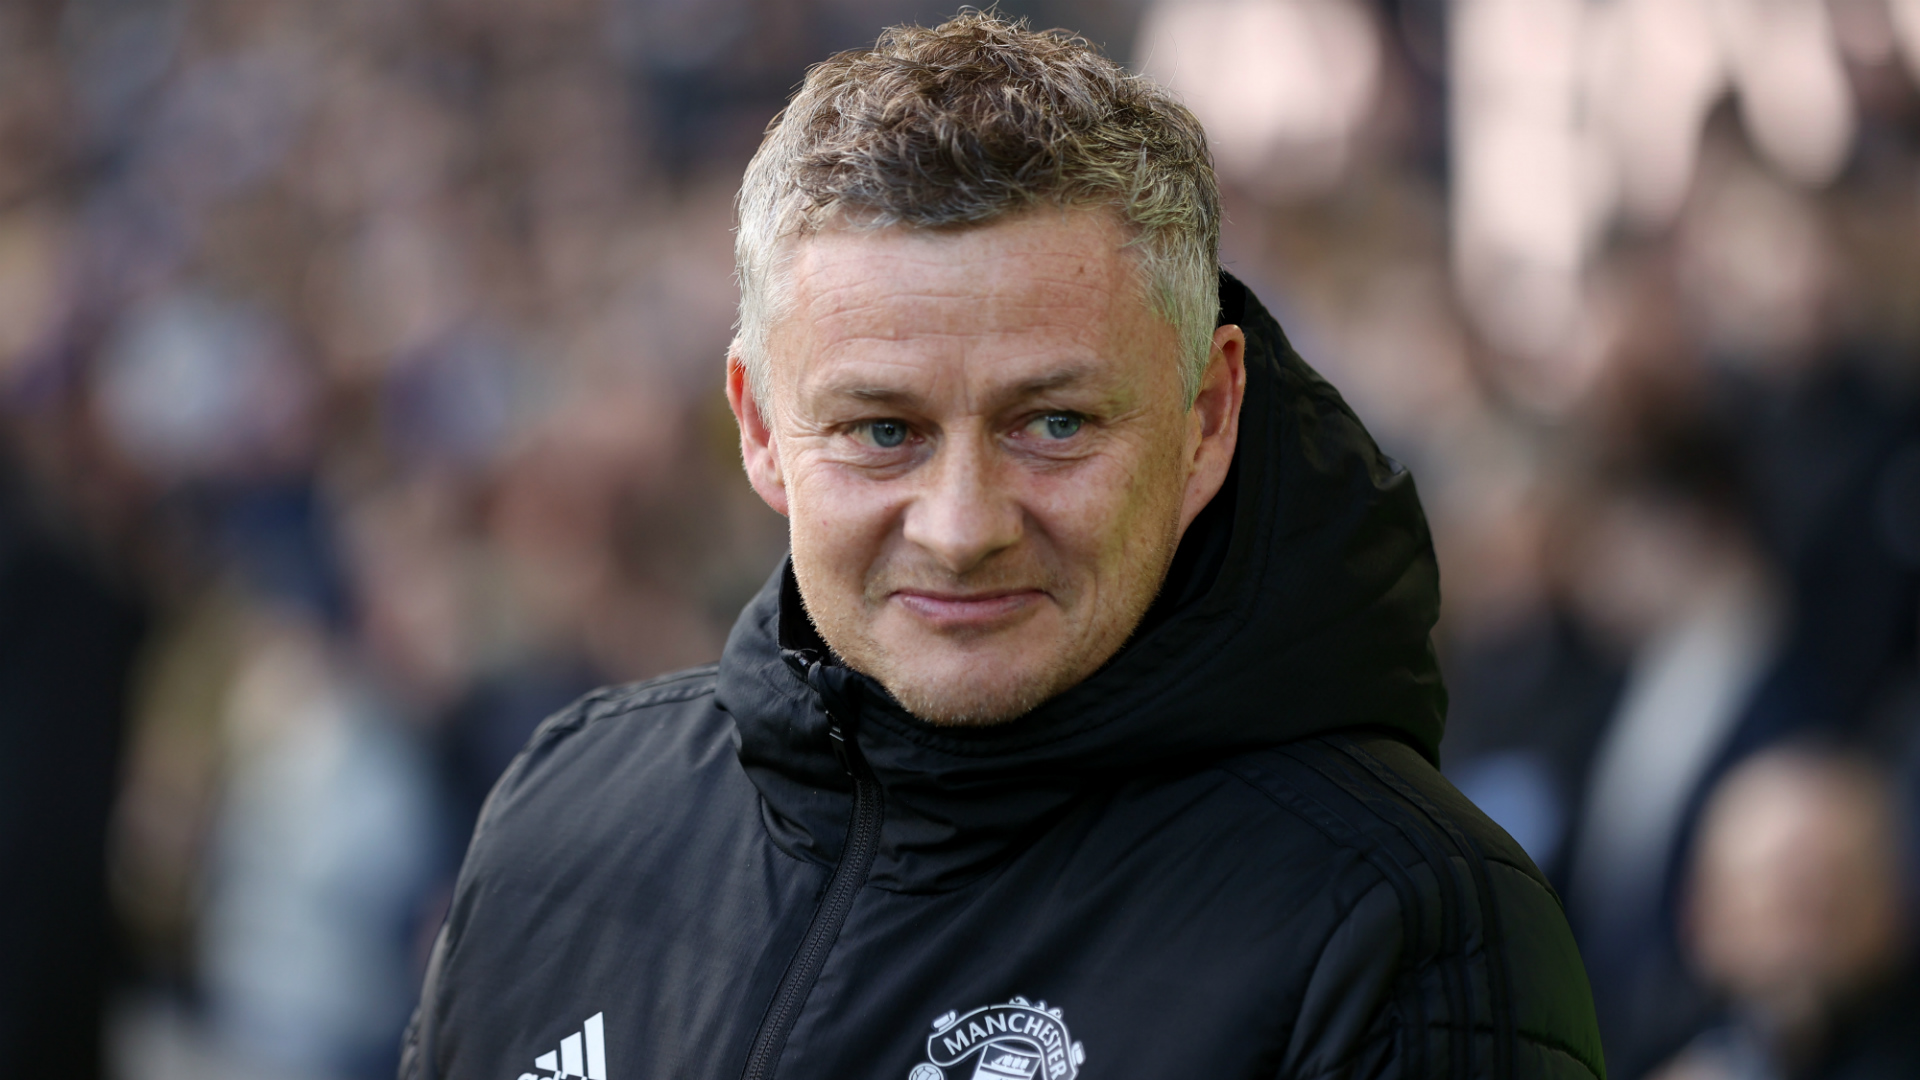 Man Utd boss Solskjaer admits plans for next season are 'up in the air'